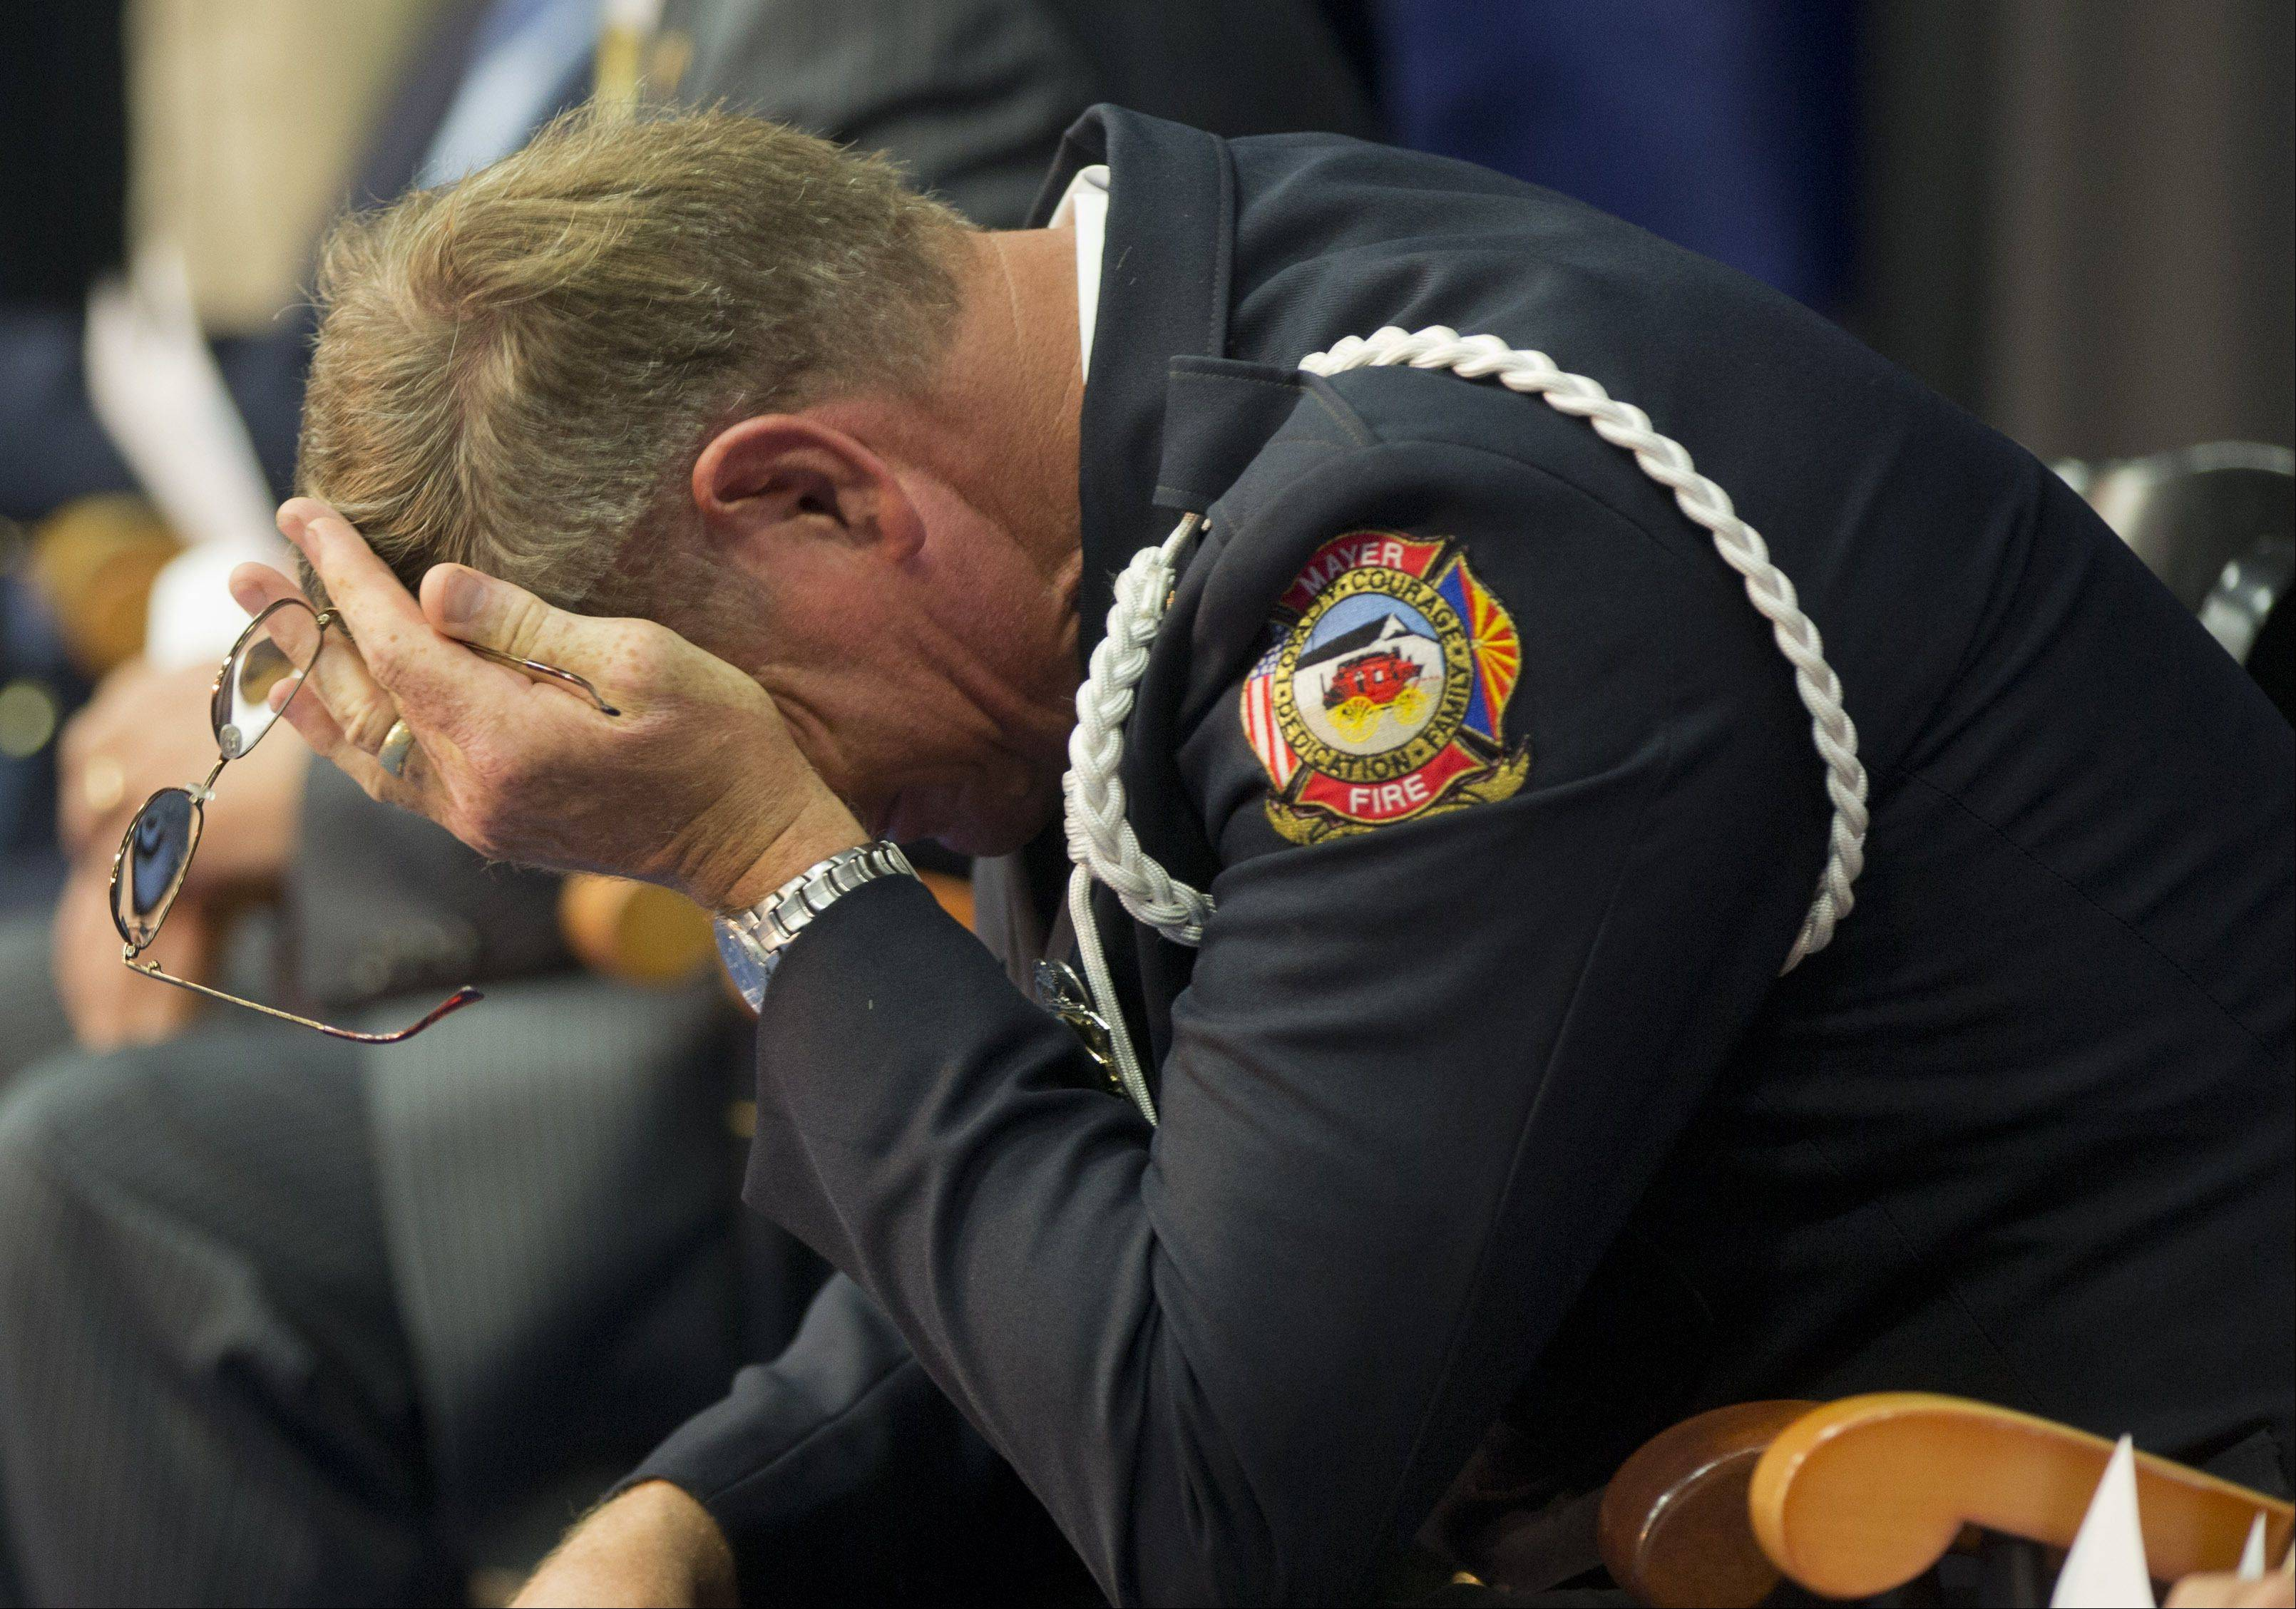 Mayer fire department chaplain Rev. Bob Ossler, reacts during a memorial service for 19 wildland firefighters, Monday, July 1, 2013 in Prescott, Ariz.